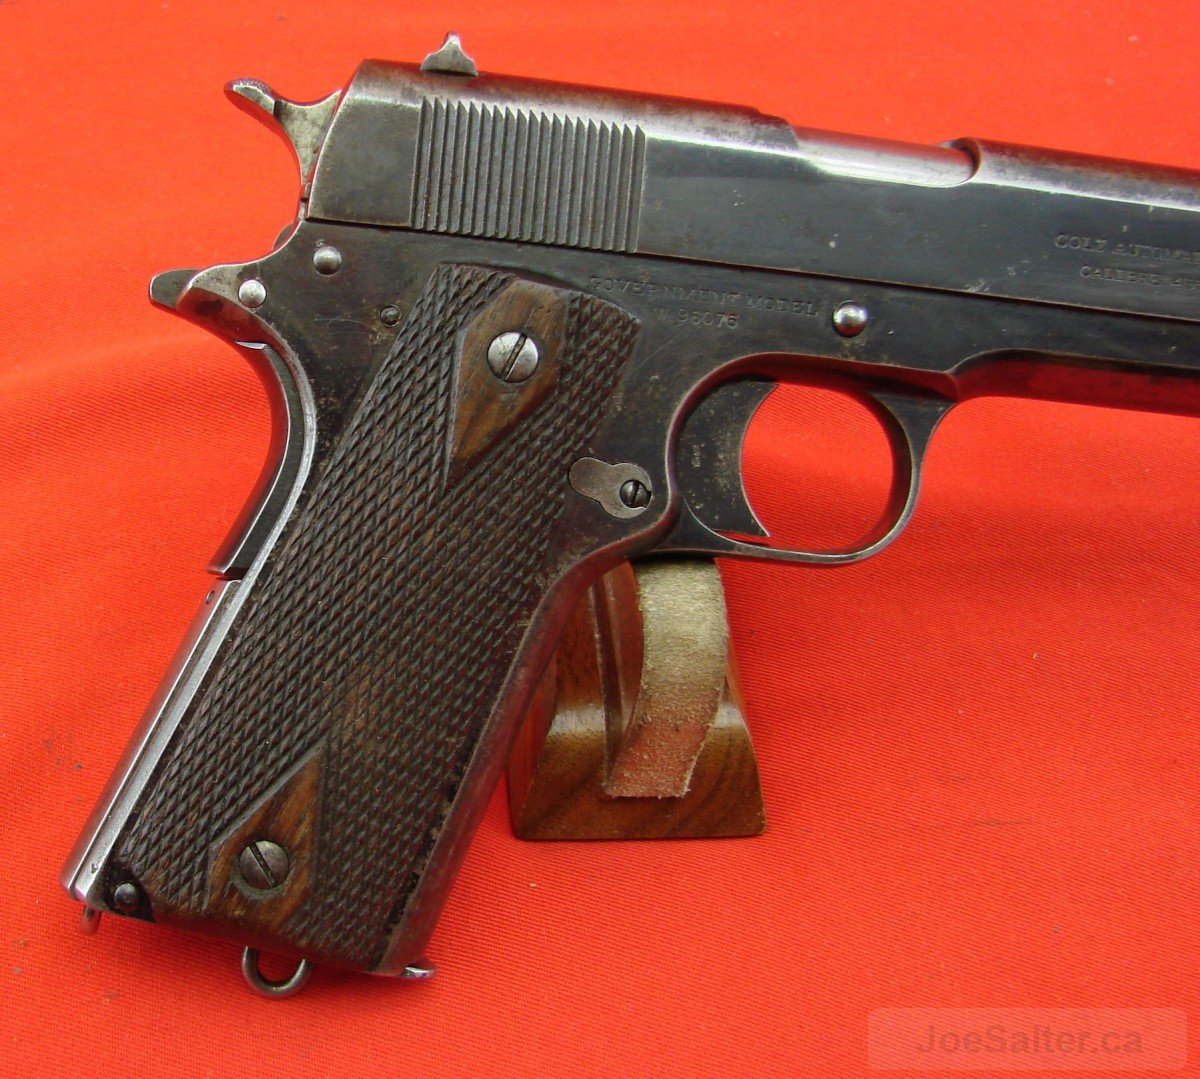 description of the colt model 1911 Colt's currently produced series 70 45 pistol is very close to duplicating the guns that came from the old factory under the blue dome in 1924 it gave the gun the official designation of pistol, caliber 45 model of 1911 the facts of the gun's reputation and service life are well-known to most handgunners.